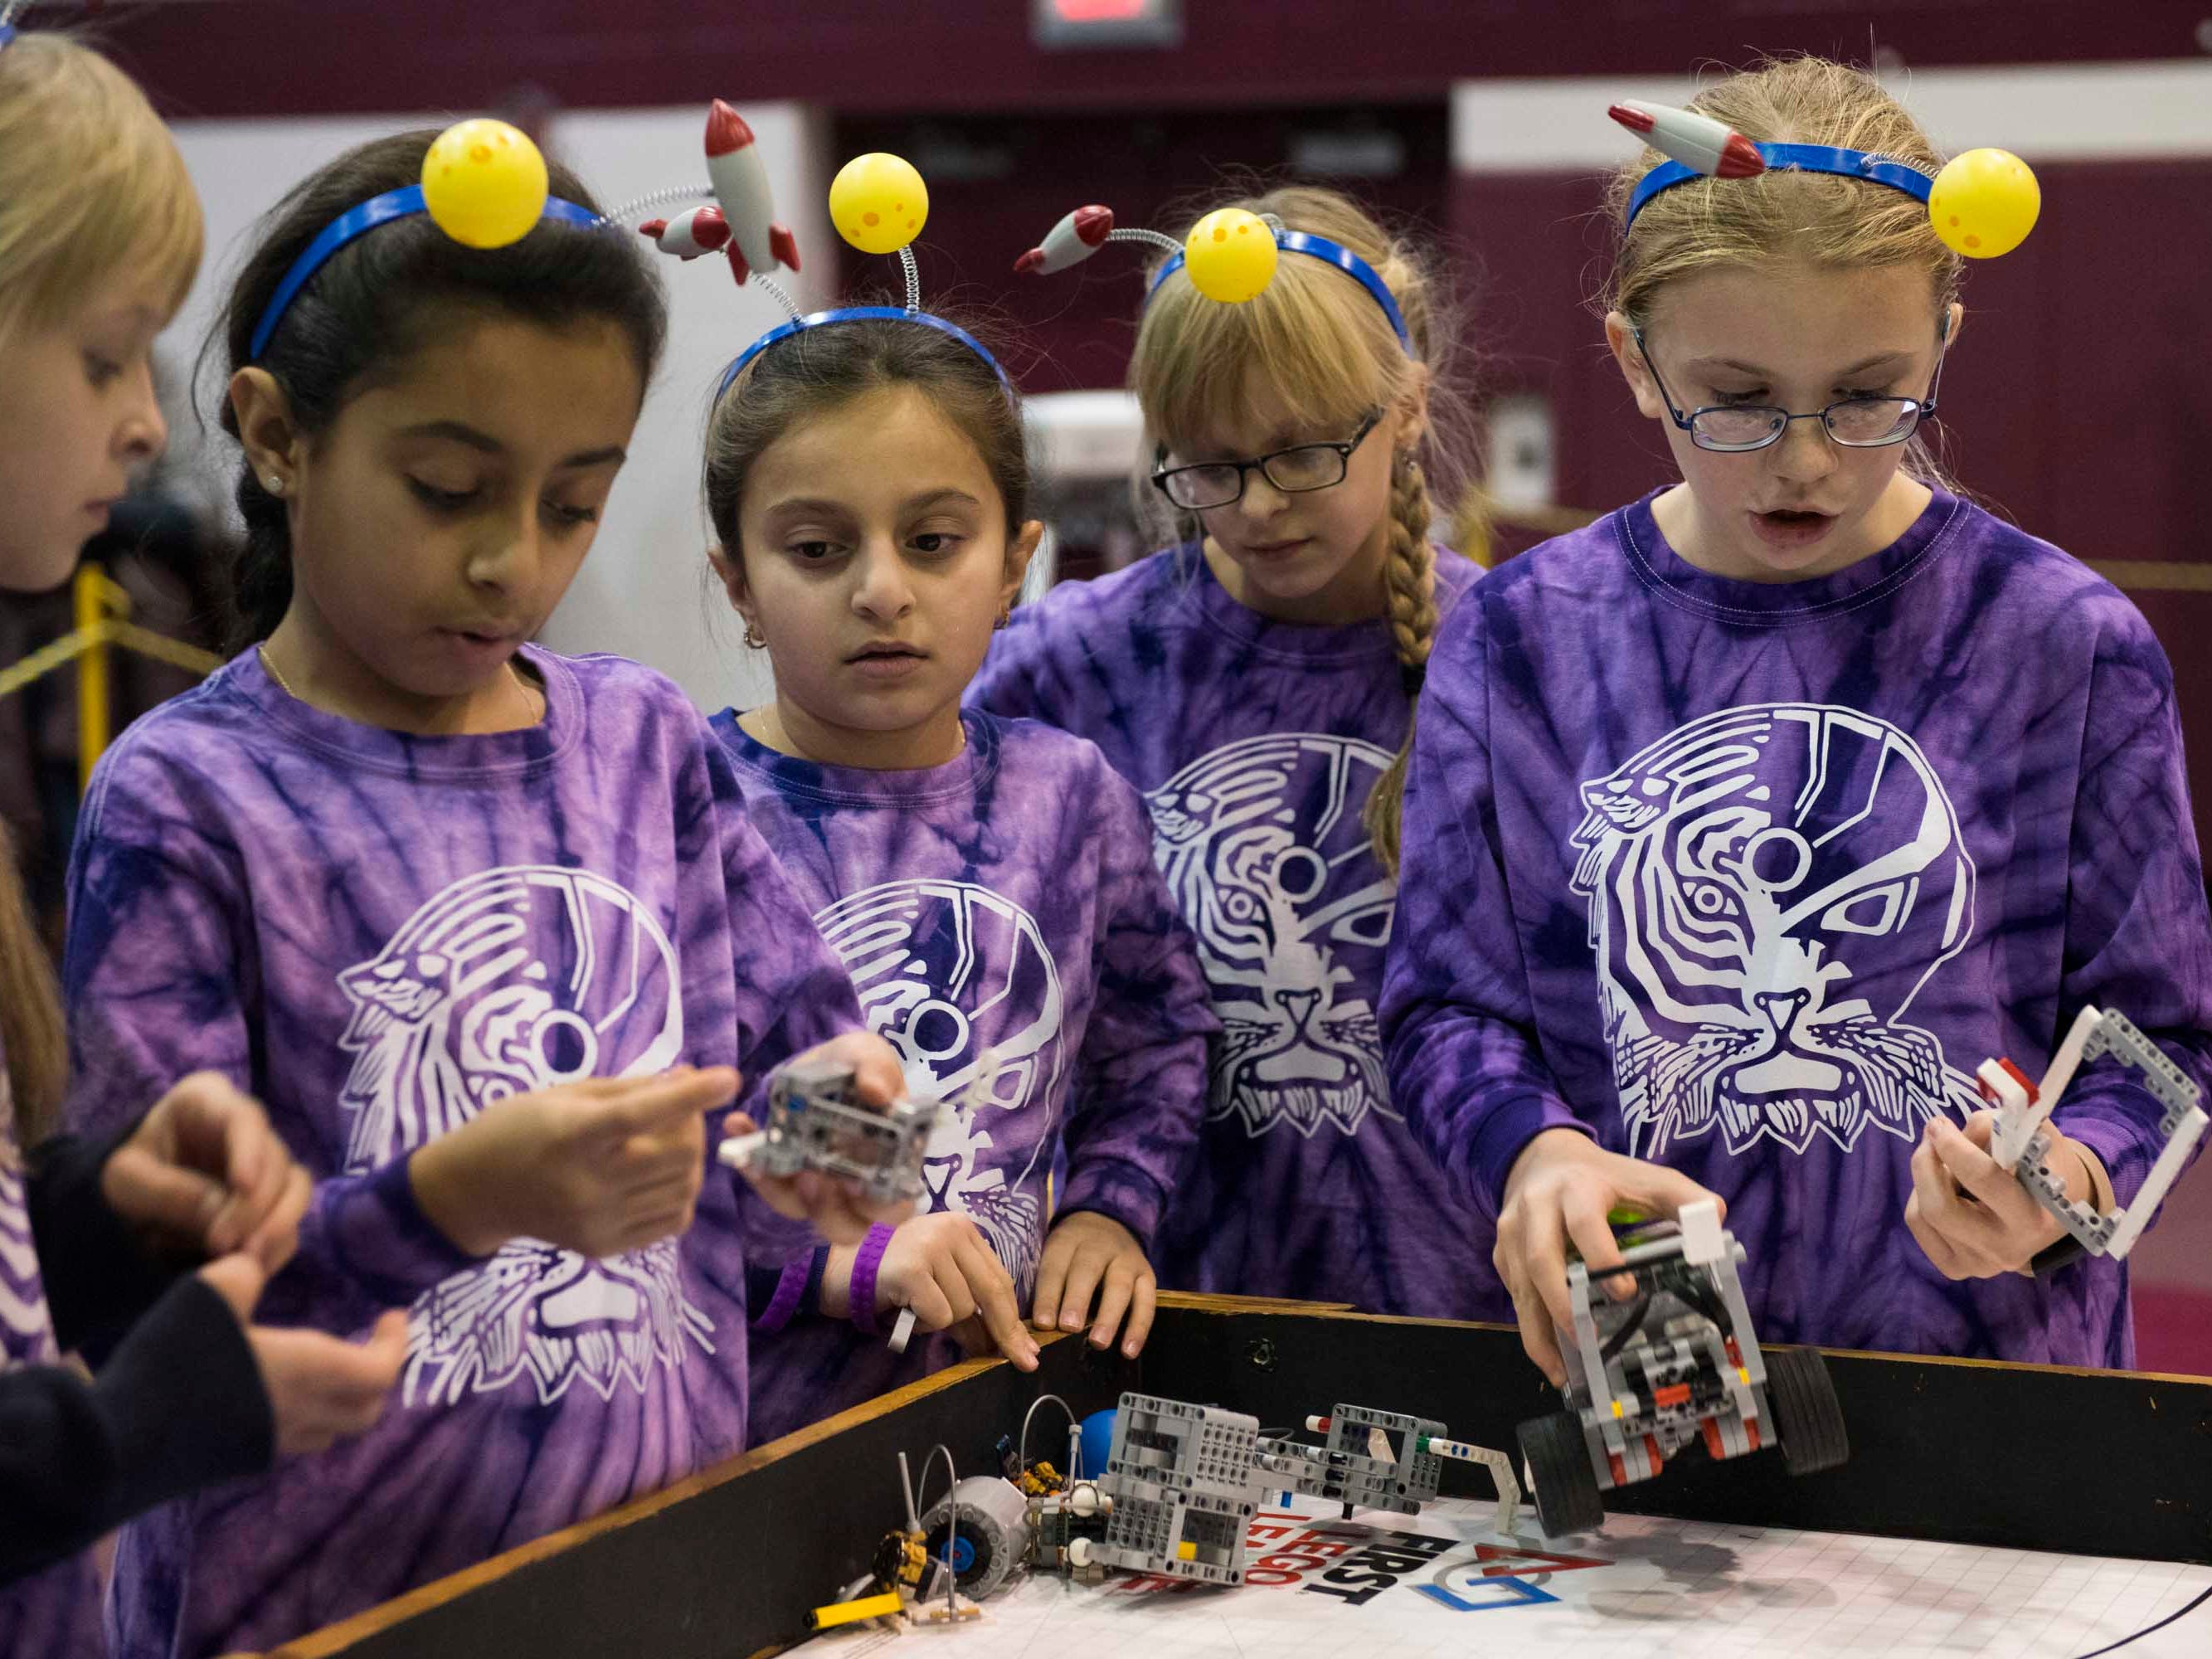 The Bengal Bots, a 4th-6th grade team from the Immaculate Conception School of Warren, prepare their robot for competition at the annual UCS ThunderQuest, a regional tournament for FIRST Lego robotics teams at Henry Ford II High School in Sterling Heights on Saturday, November 17, 2018.